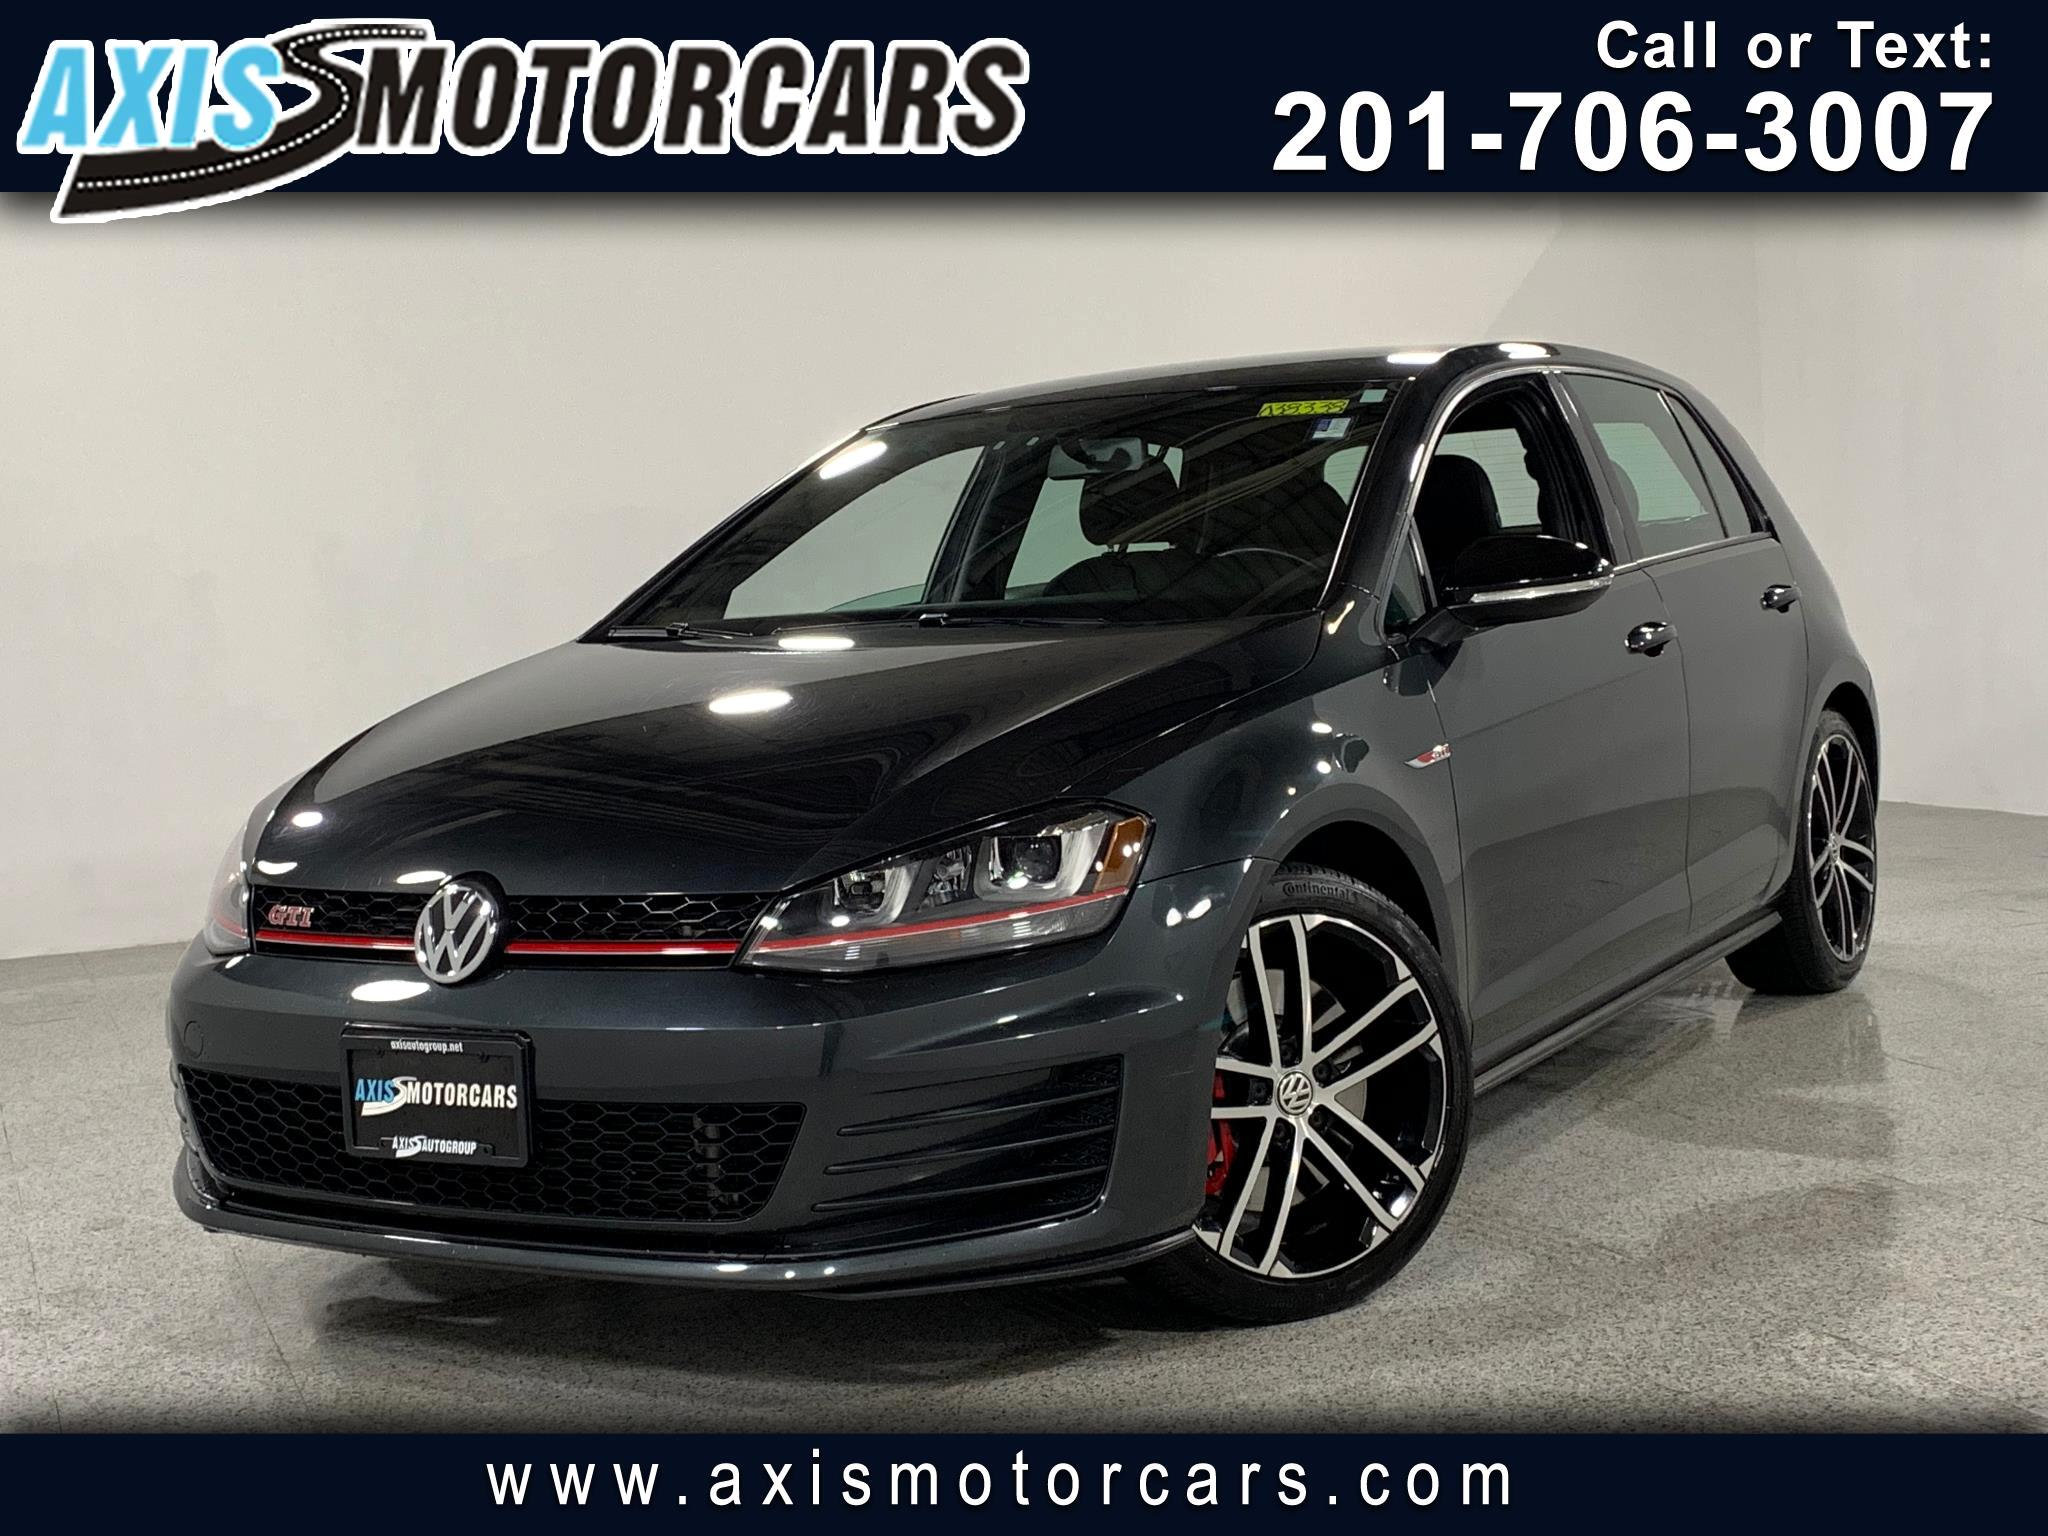 2017 Volkswagen Golf GTI 2.0T 4-Door S Manual